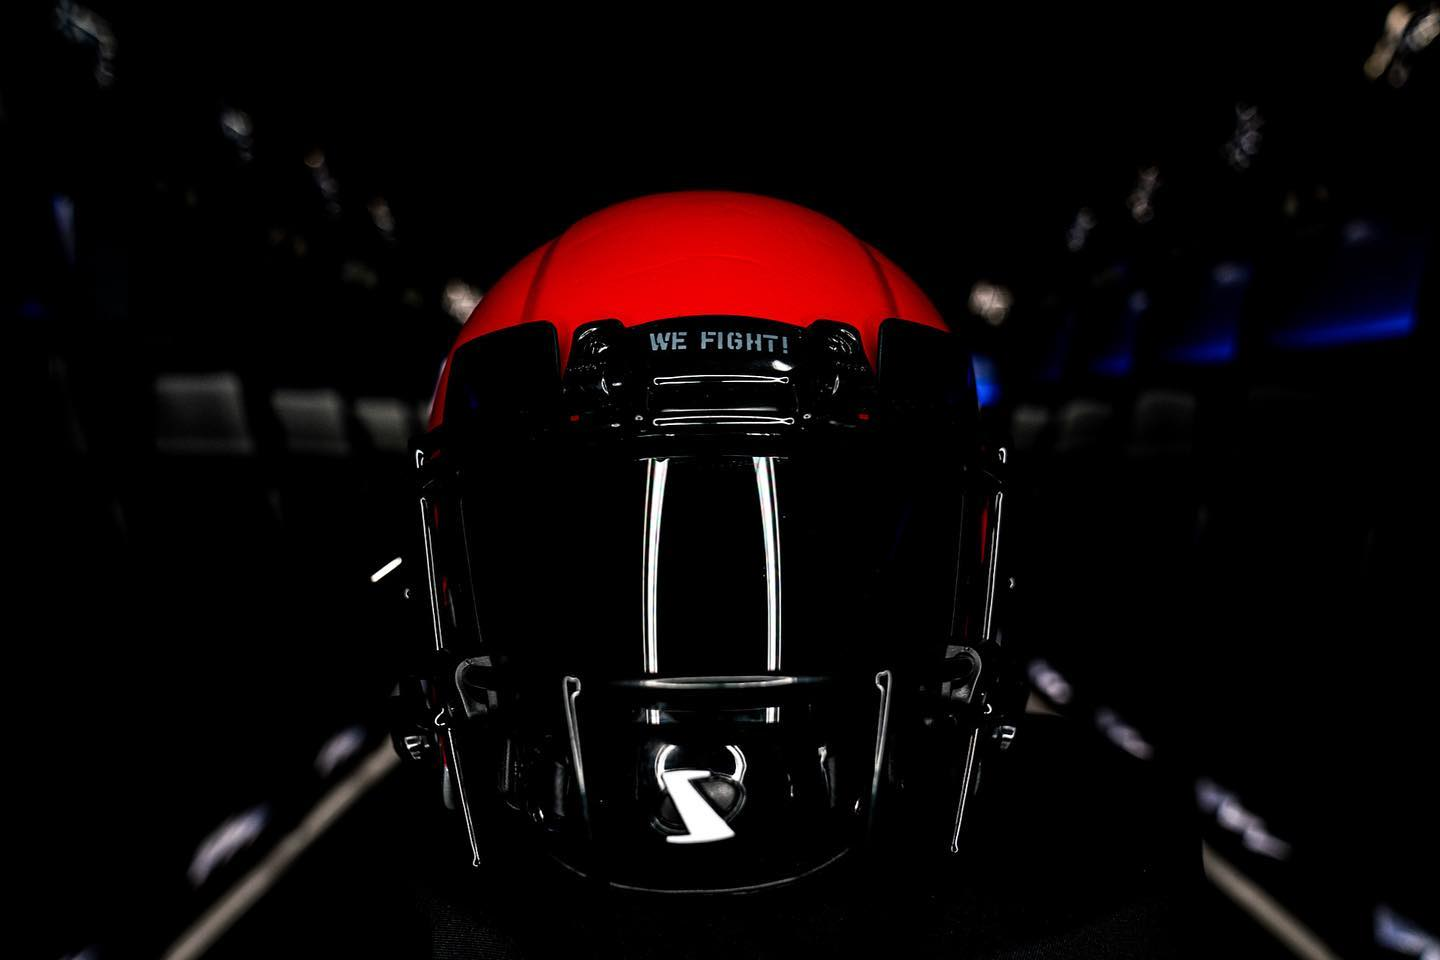 Pics Video Air Force Academy To Honor Tuskegee Airmen With New Football Uniforms